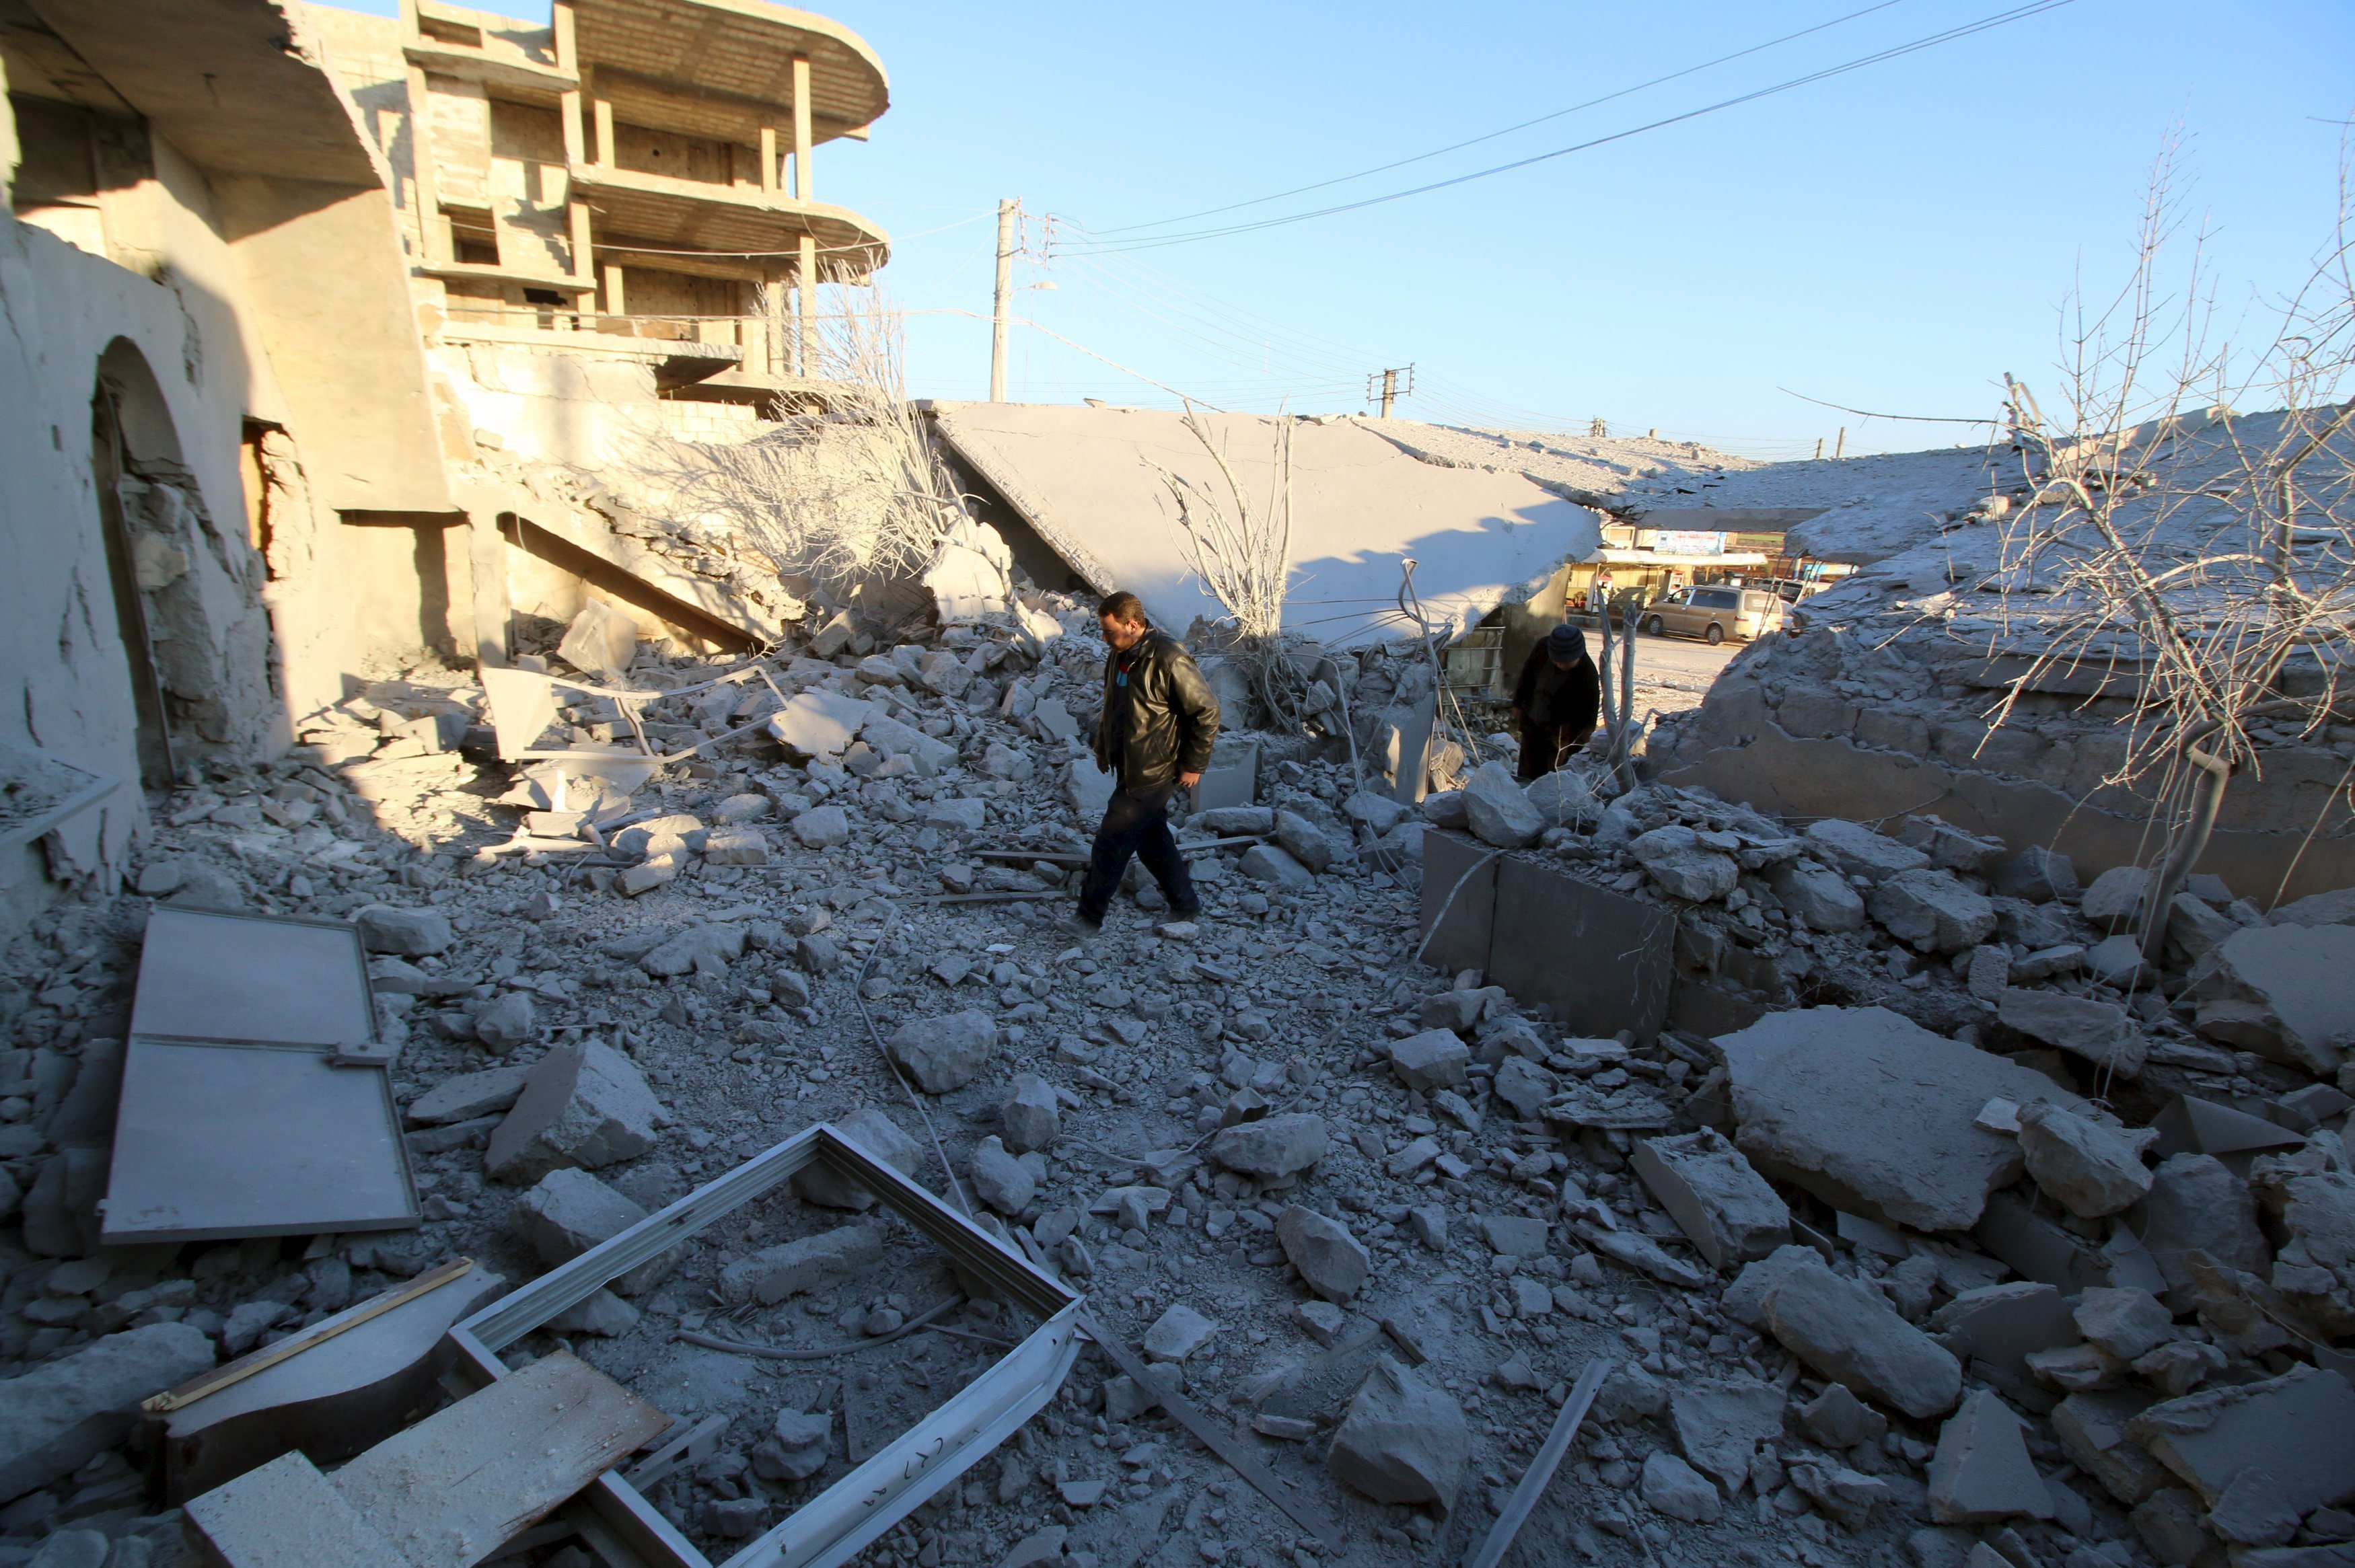 Residents inspect damage after airstrikes by pro-Syrian government forces in Anadan city, about 10 kilometers away from the towns of Nubul and Zahraa, Northern Aleppo countryside, Syria February 3, 2016